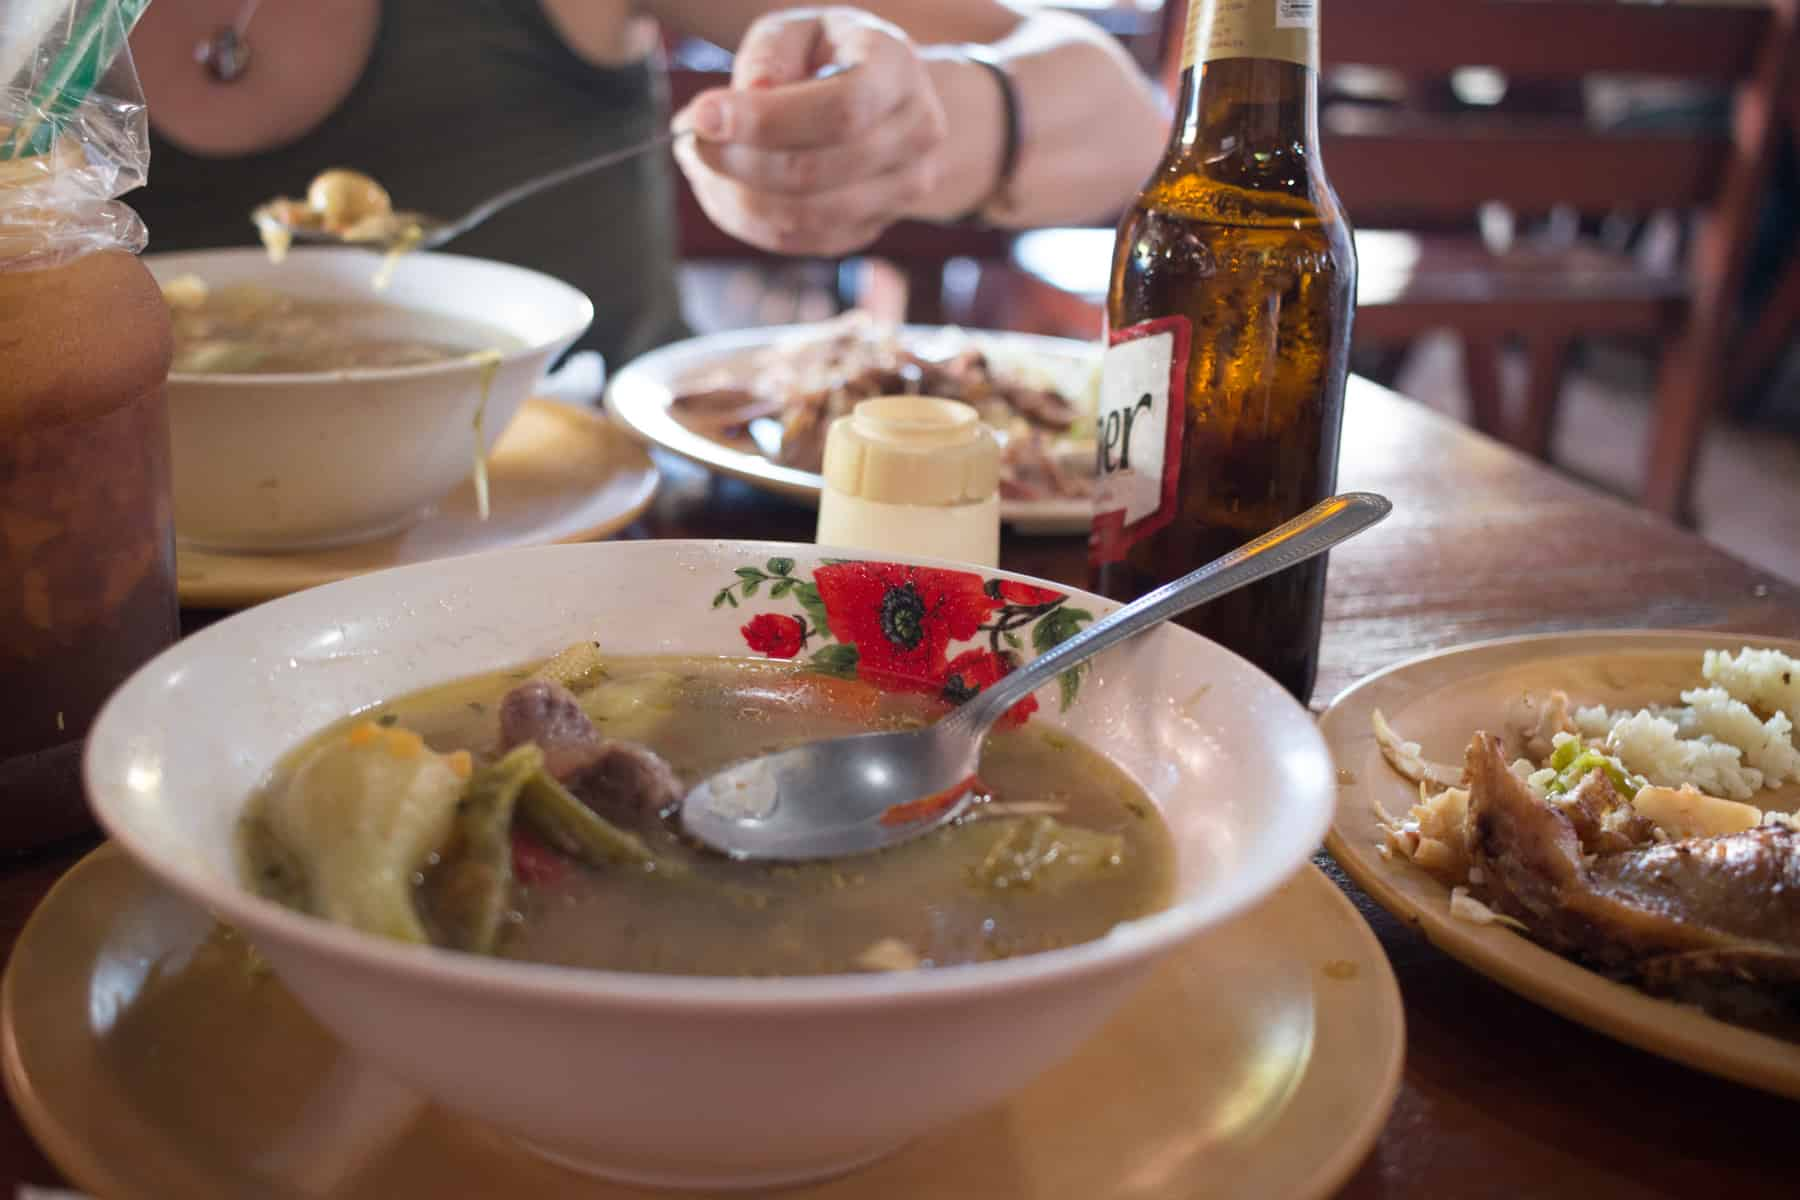 Two bowls of soup filled with broth and vegetales, with two other plates of rice and chicken, El Salvador Mondongo Soup